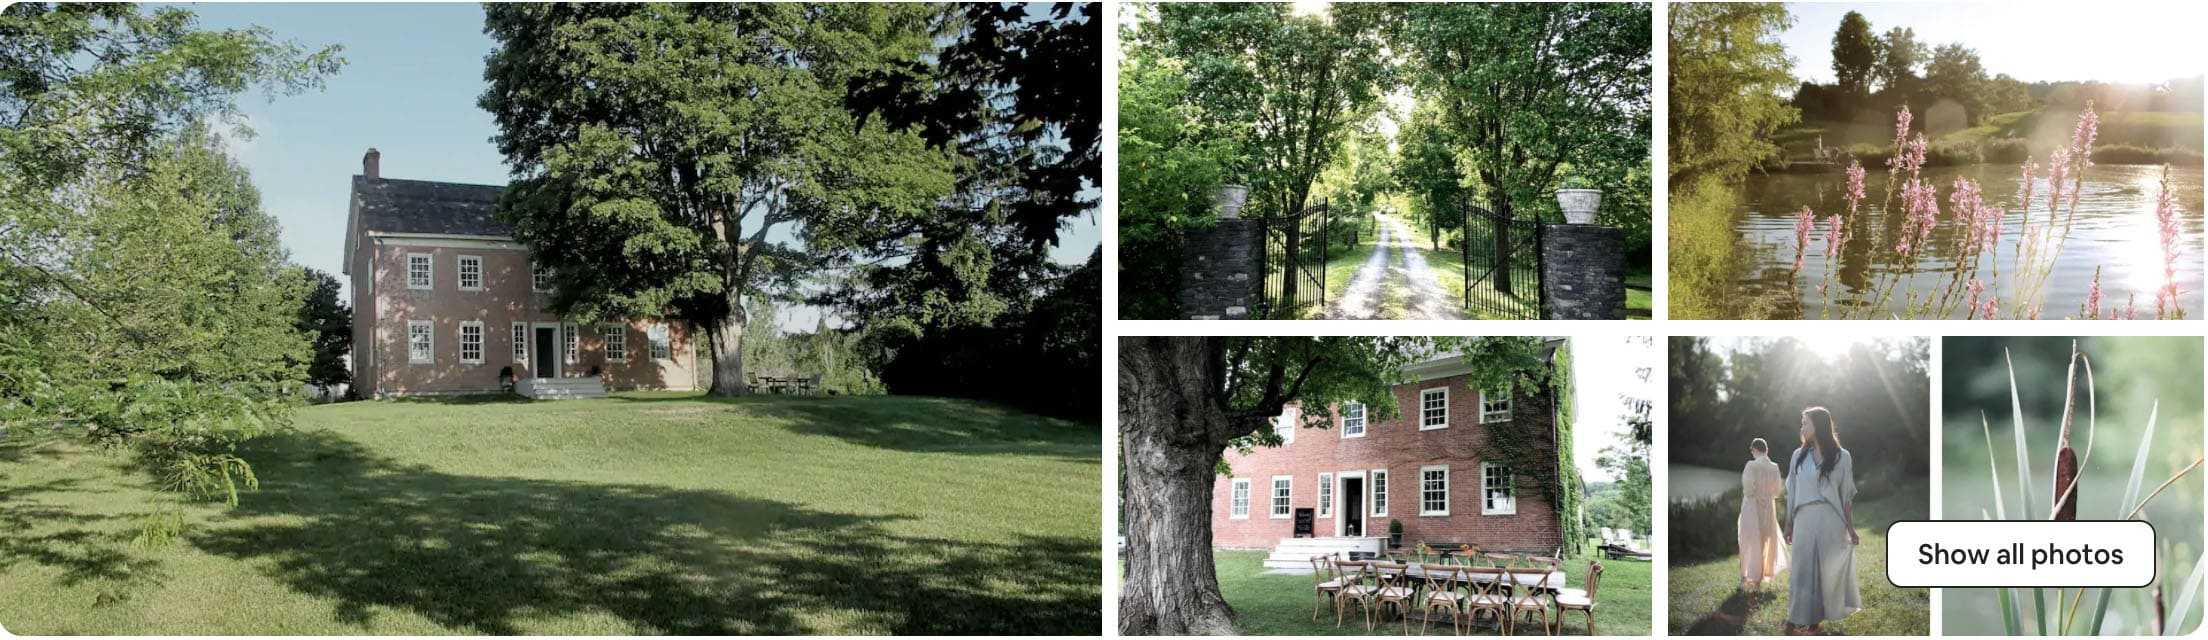 Windrift Hall - best airbnb wedding venue in New York